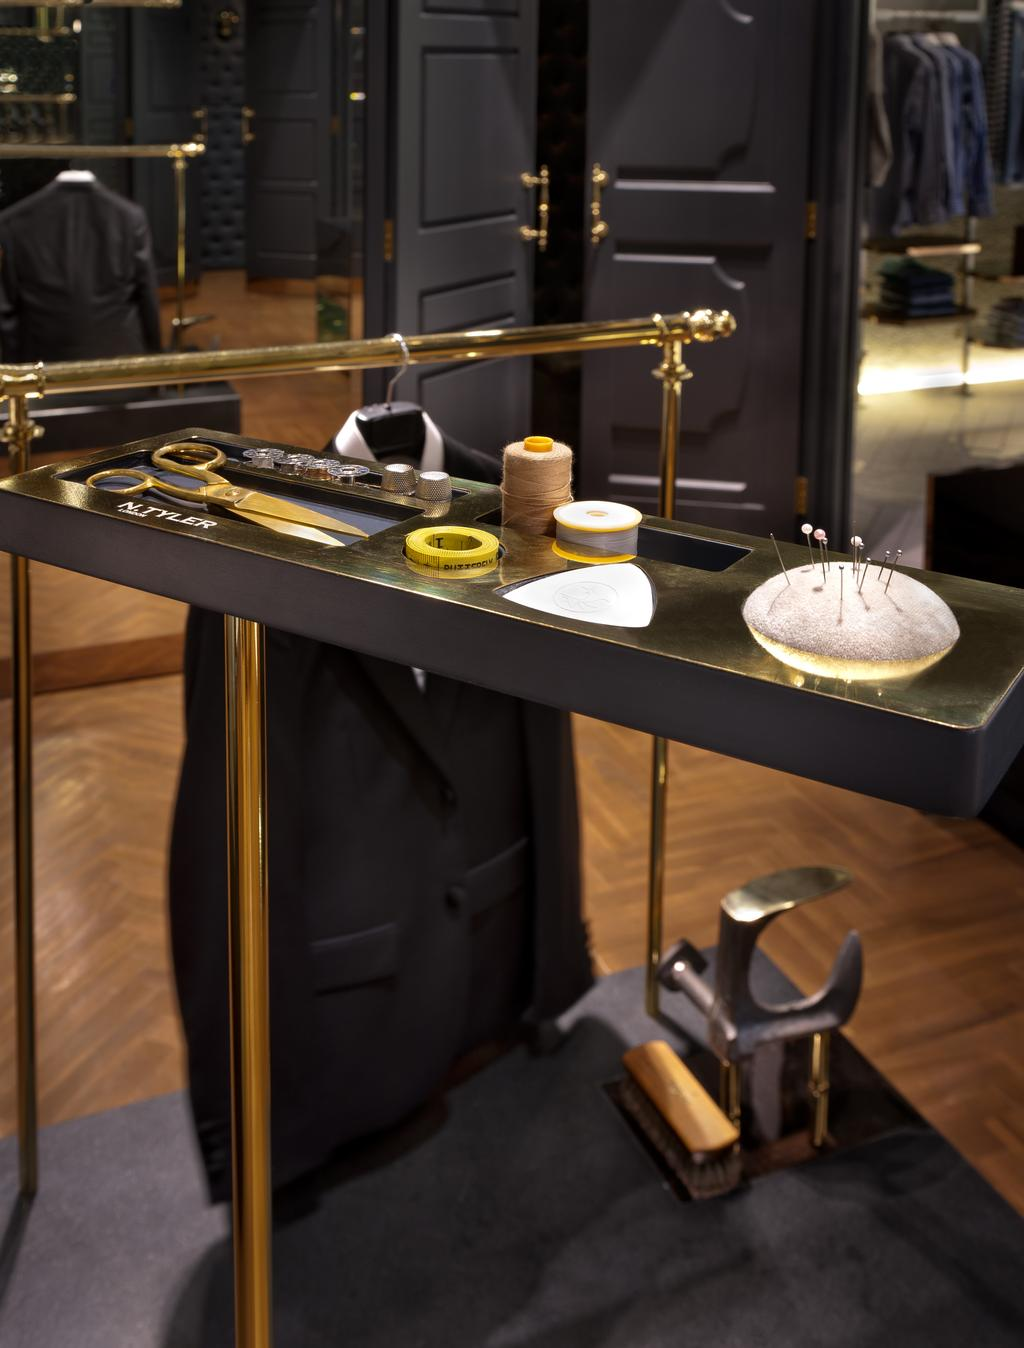 N.Tyler Flagship Boutique, Commercial, Architect, UPSTAIRS_, Modern, Industrial, Dining Table, Furniture, Table, Brass Section, Cornet, Horn, Leisure Activities, Music, Musical Instrument, Trumpet, Coffee Table, Appliance, Electrical Device, Oven